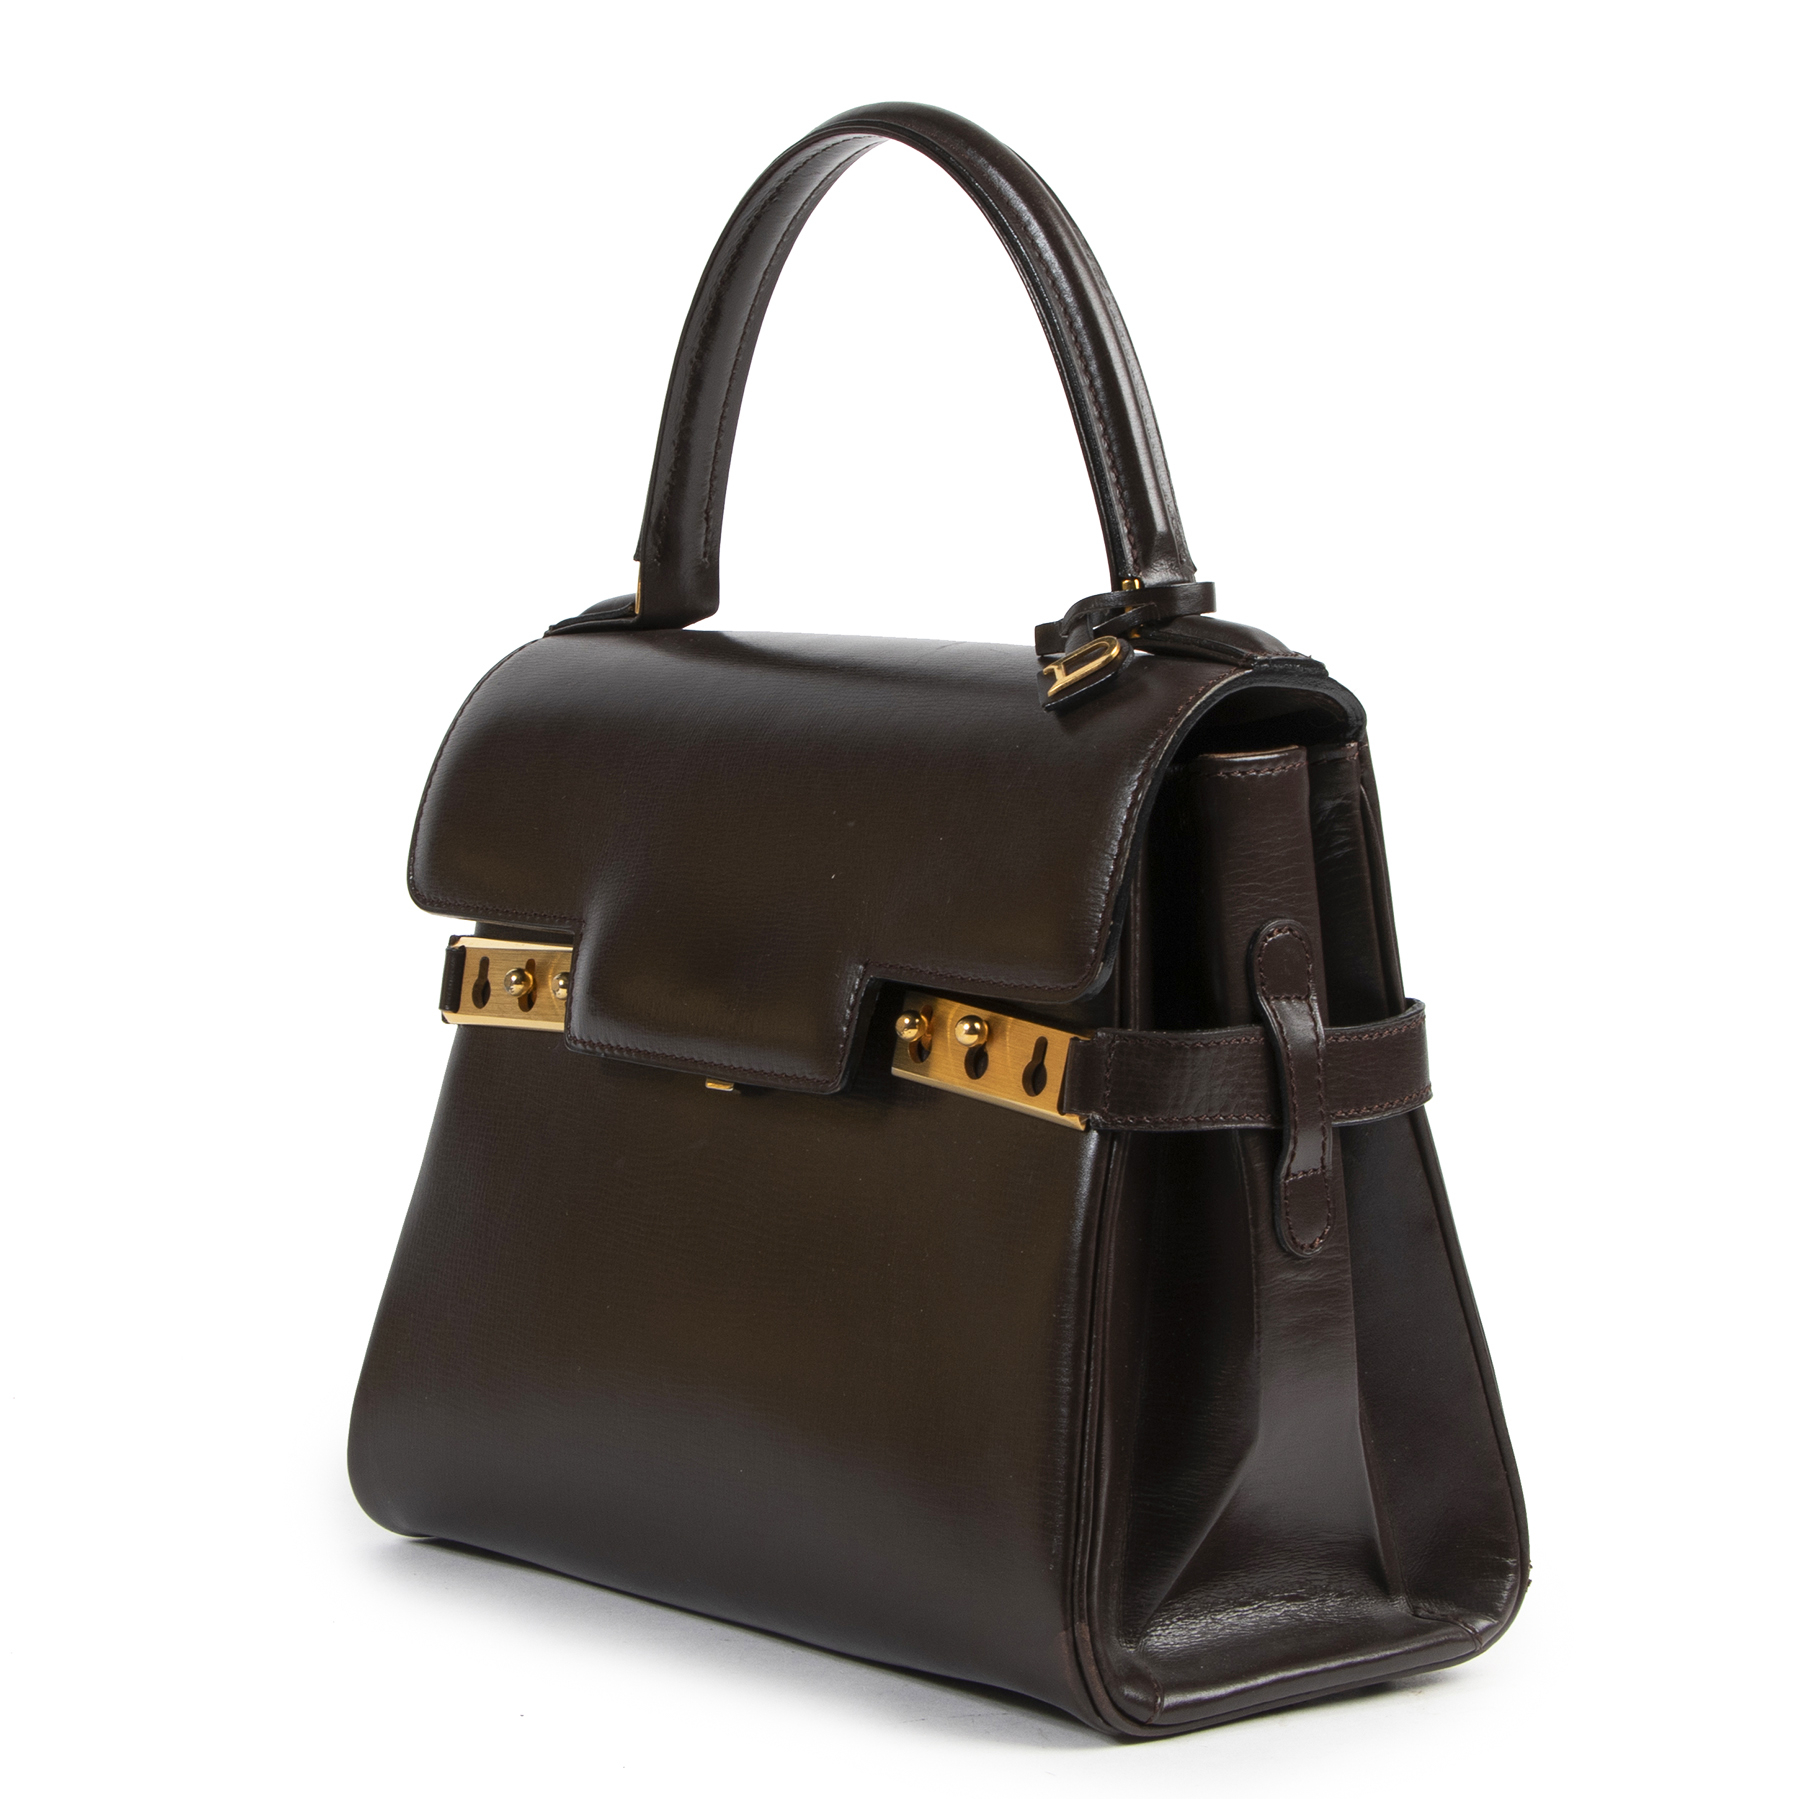 Delvaux Tempete Brown leather PM